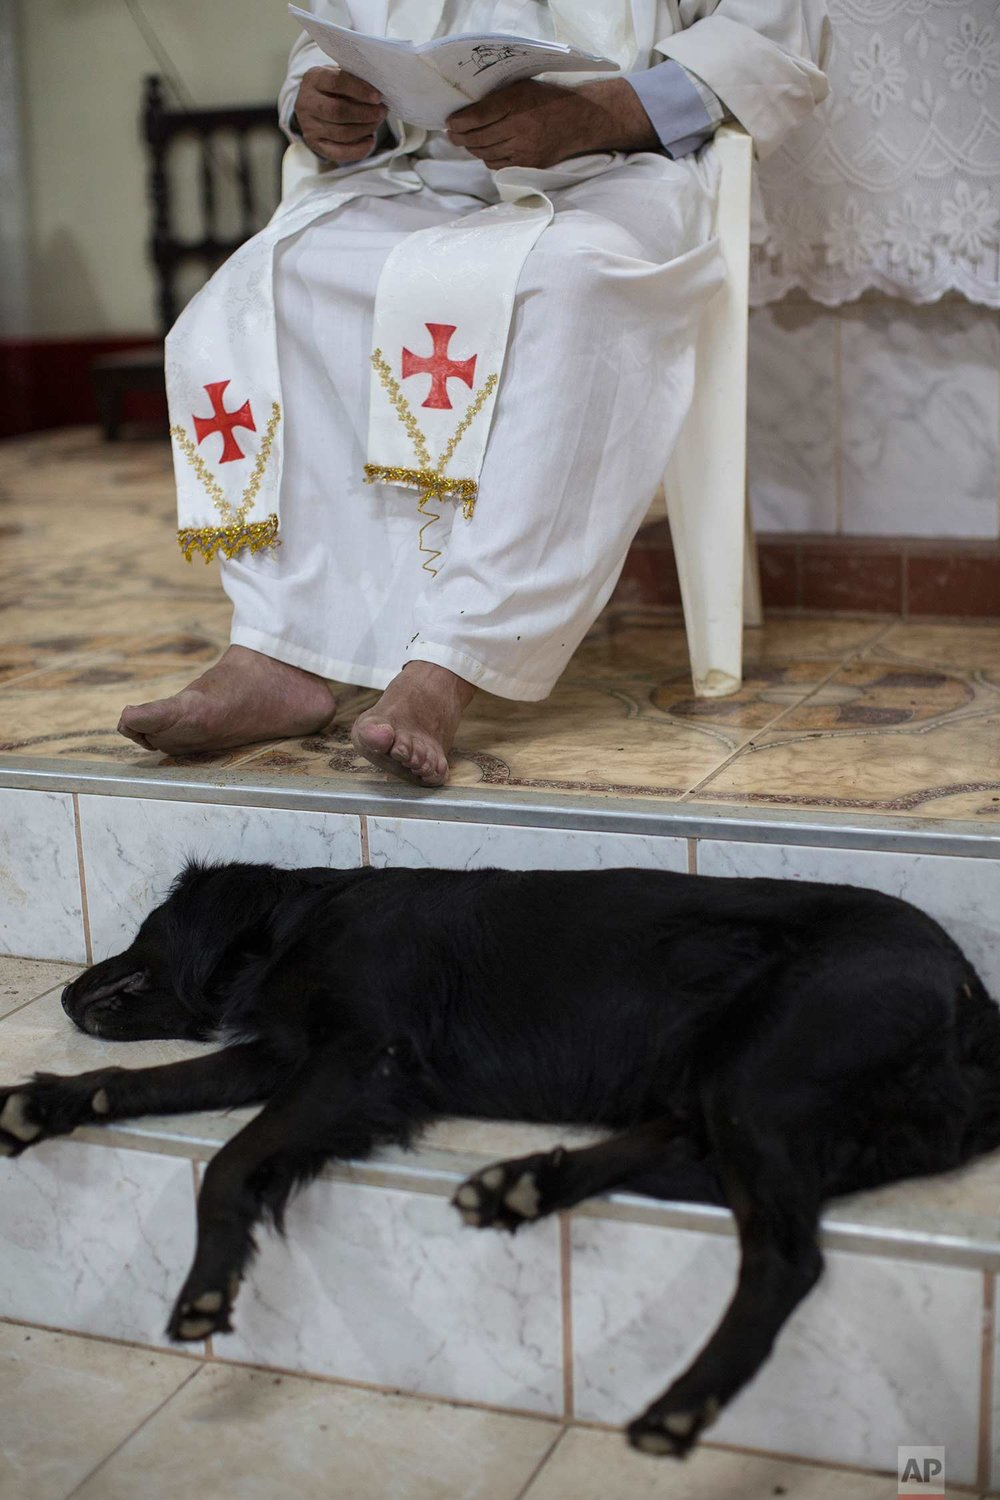 In this Jan. 6, 2018 photo, Father Pablo Zabala, better known as Padre Pablo, celebrates a Mass as his dog naps on the steps of the altar in Boca Colorado, part of Peru's Madre de Dios region in the Amazon. Known for his eccentric style, the 70-year-old Spanish priest often celebrates Mass barefooted and with his pet dog Neron at his side. (AP Photo/Rodrigo Abd) |  See these photos on AP Images